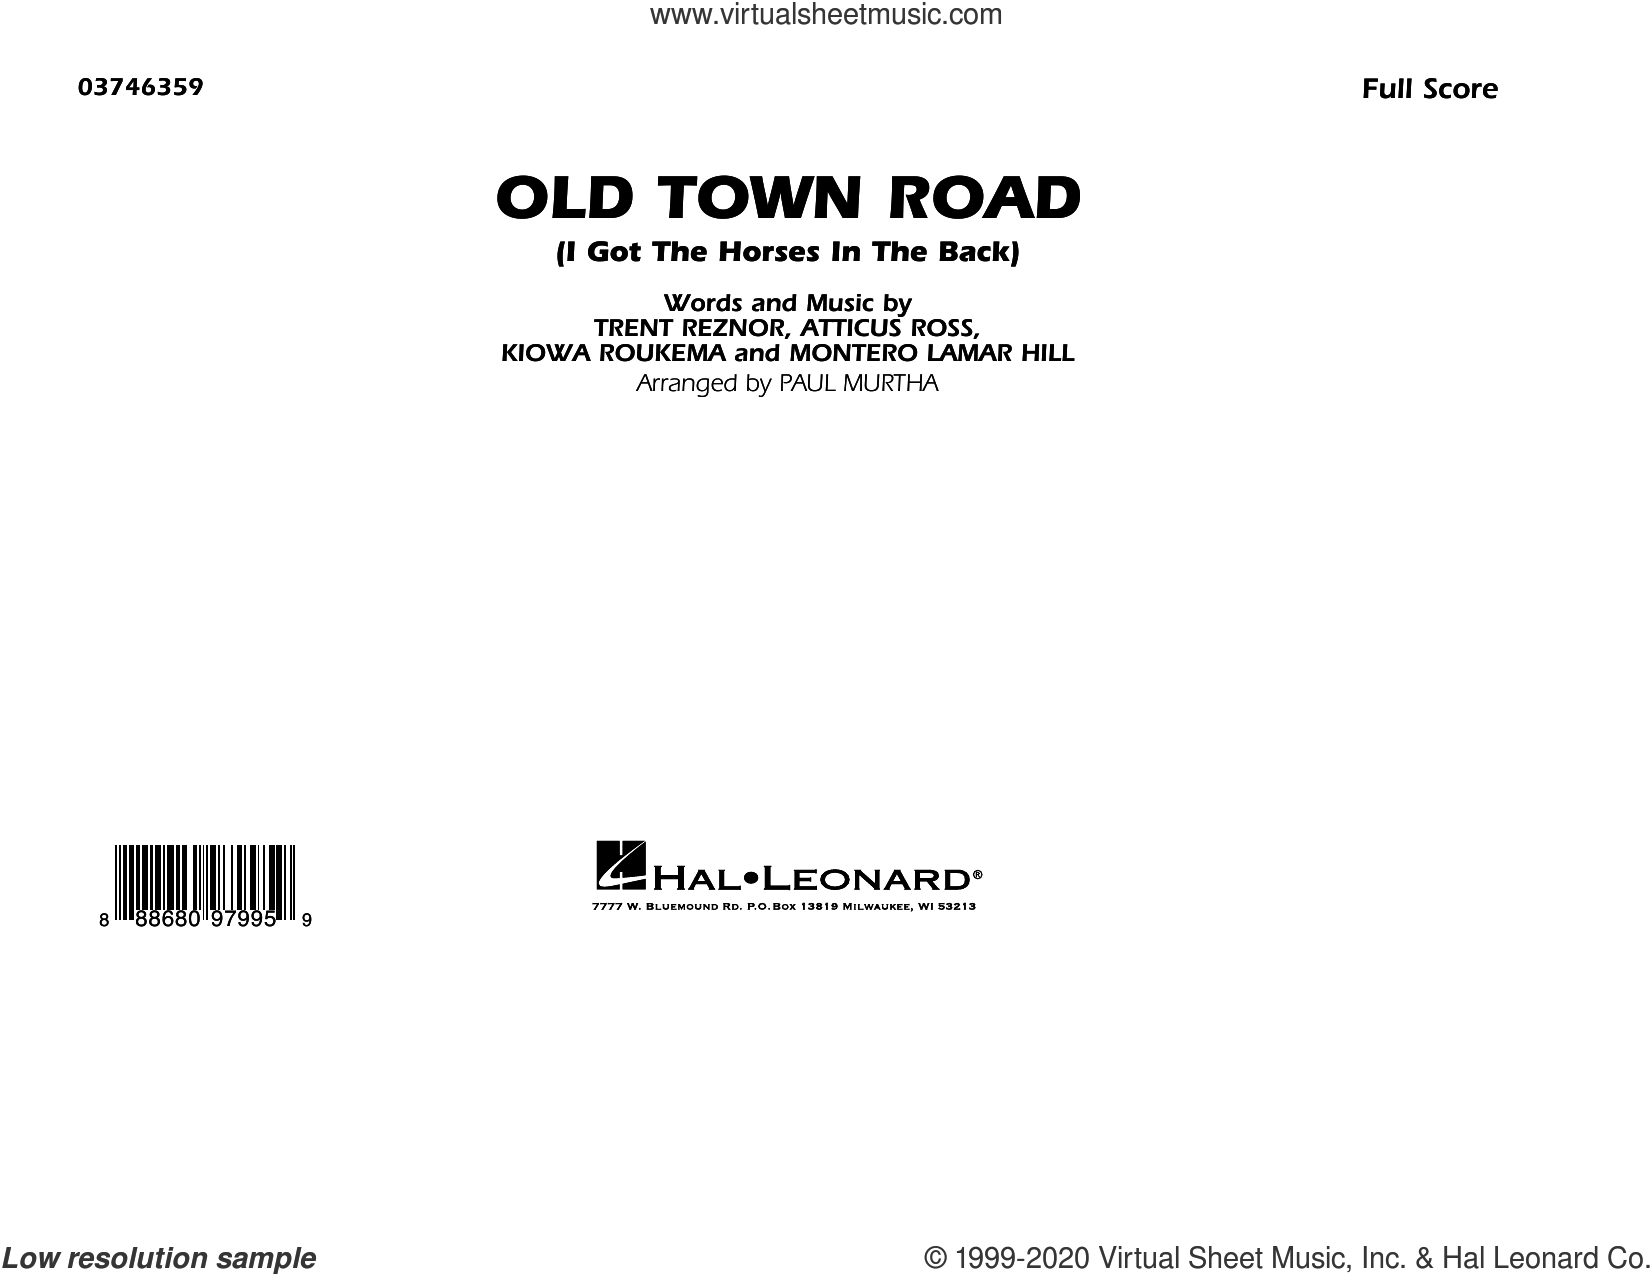 Old Town Road (arr. Paul Murtha) (COMPLETE) sheet music for marching band by Lil Nas X feat. Billy Ray Cyrus, Atticus Ross, Kiowa Roukema, Lil Nas X, Montero Lamar Hill, Paul Murtha and Trent Reznor, intermediate skill level